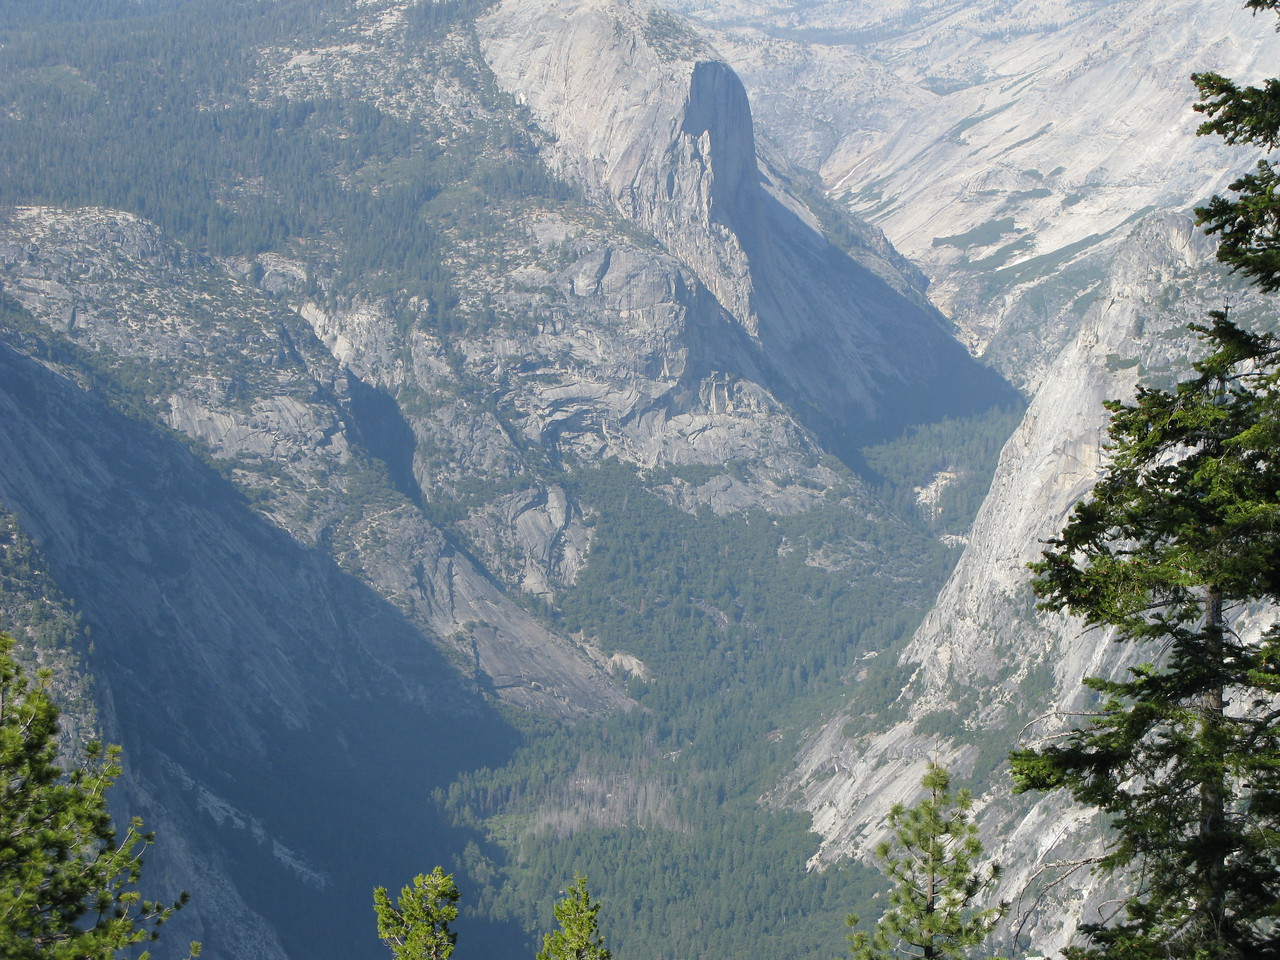 Below the Half Dome